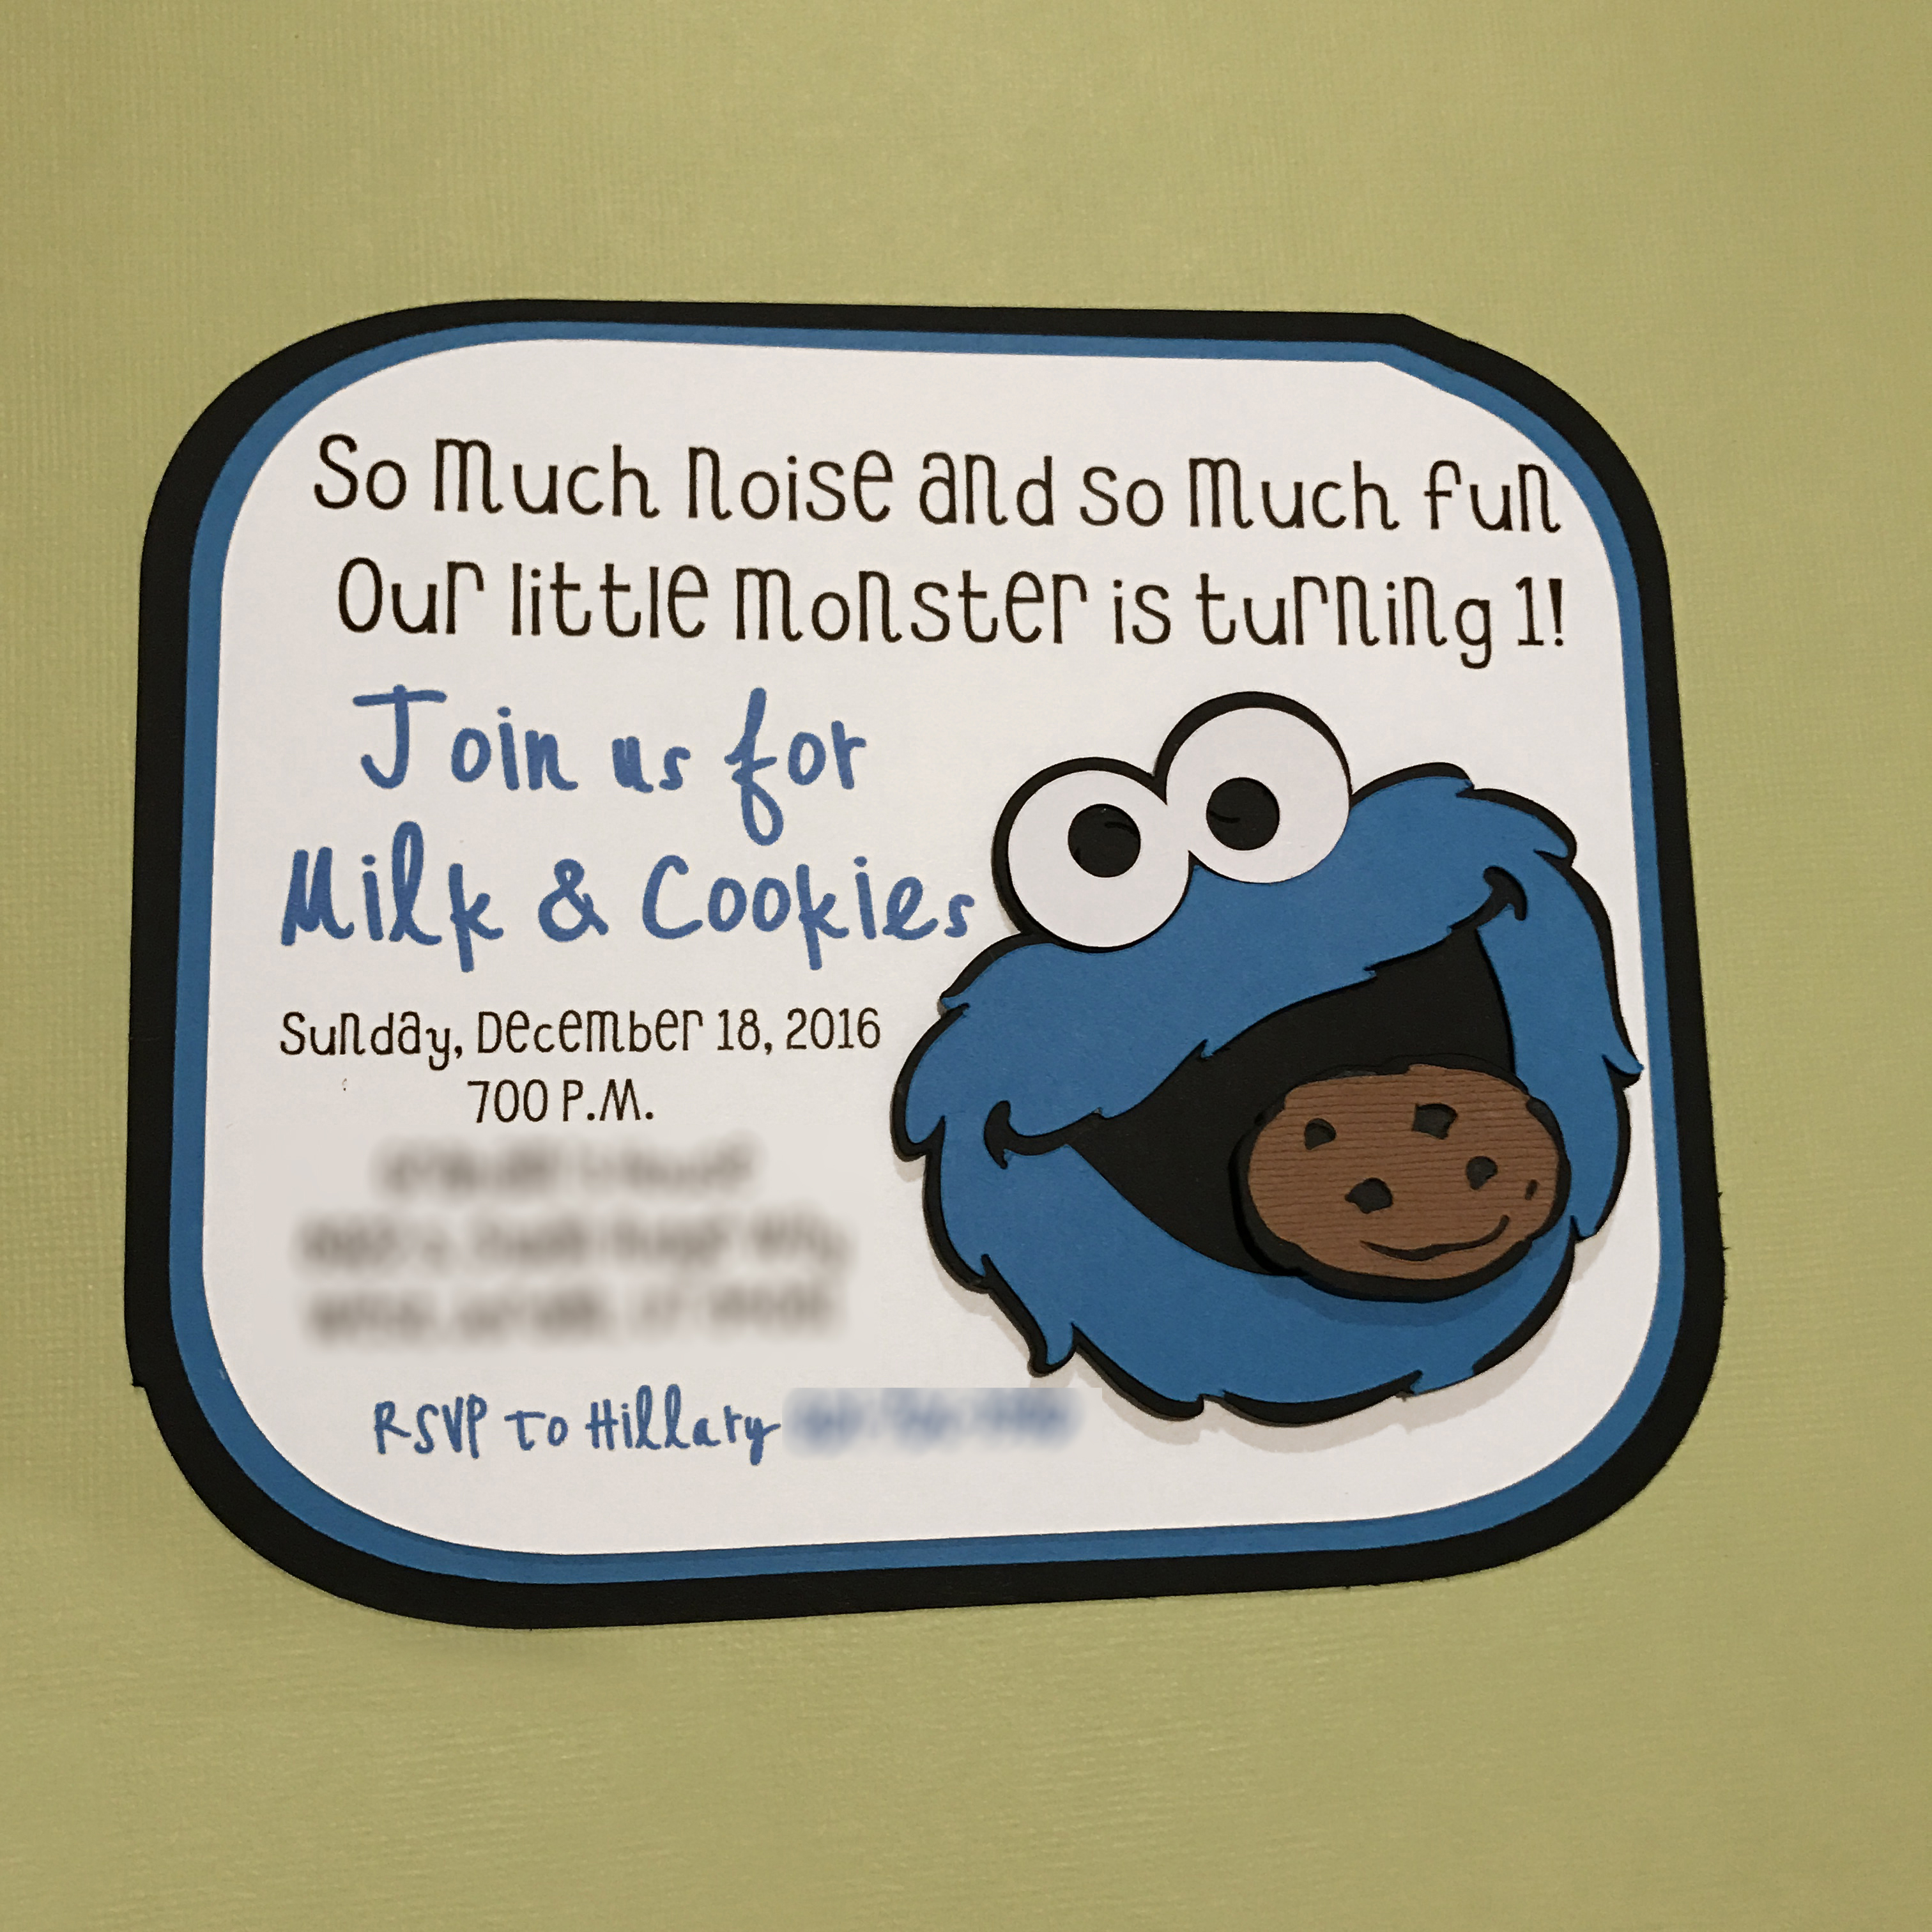 Cookie monster,Milk and cookie bar was so much fun to create using my Cricut Explore Air 2!! get all the details, tutorials, and recipes at sugarcoatedhousewife.com